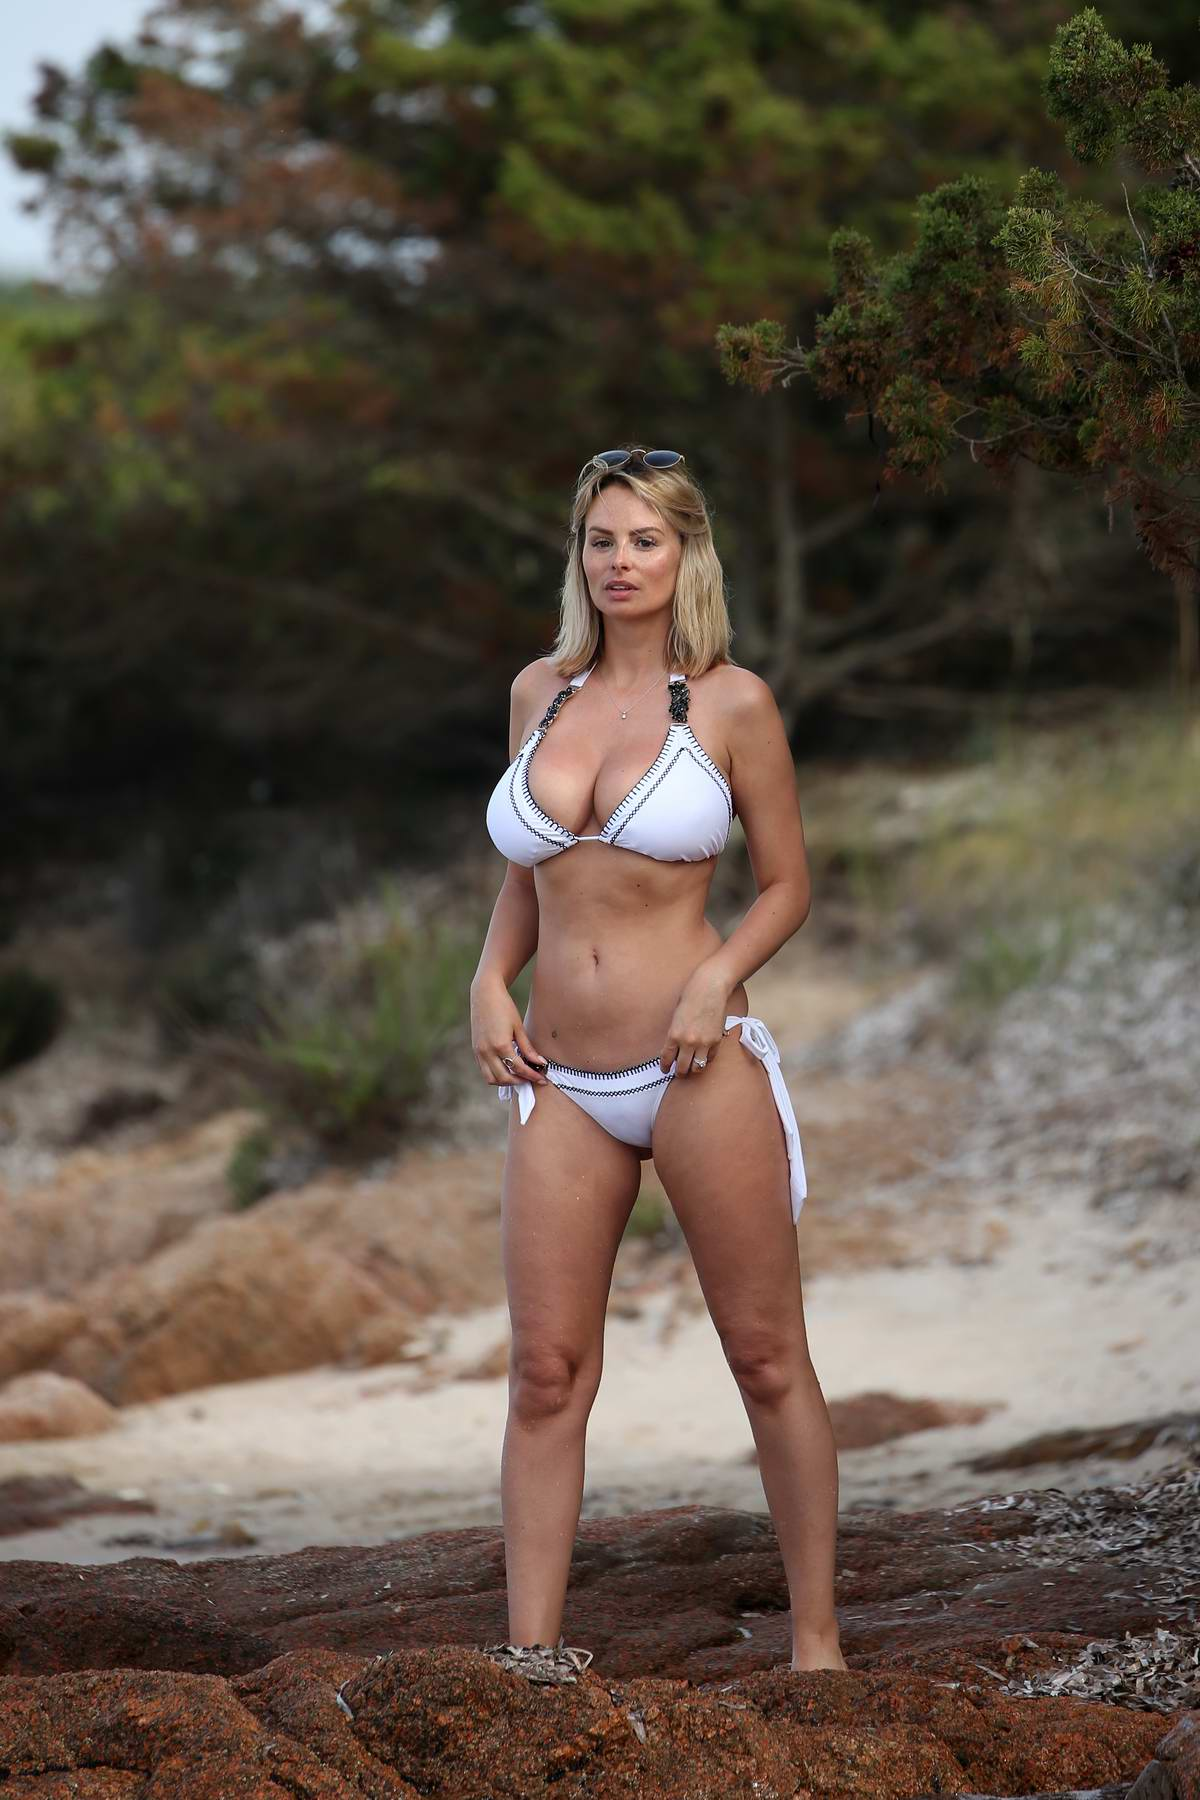 Rhian Sugden seen wearing a white bikini while at the beach in Porto Cervo, Italy